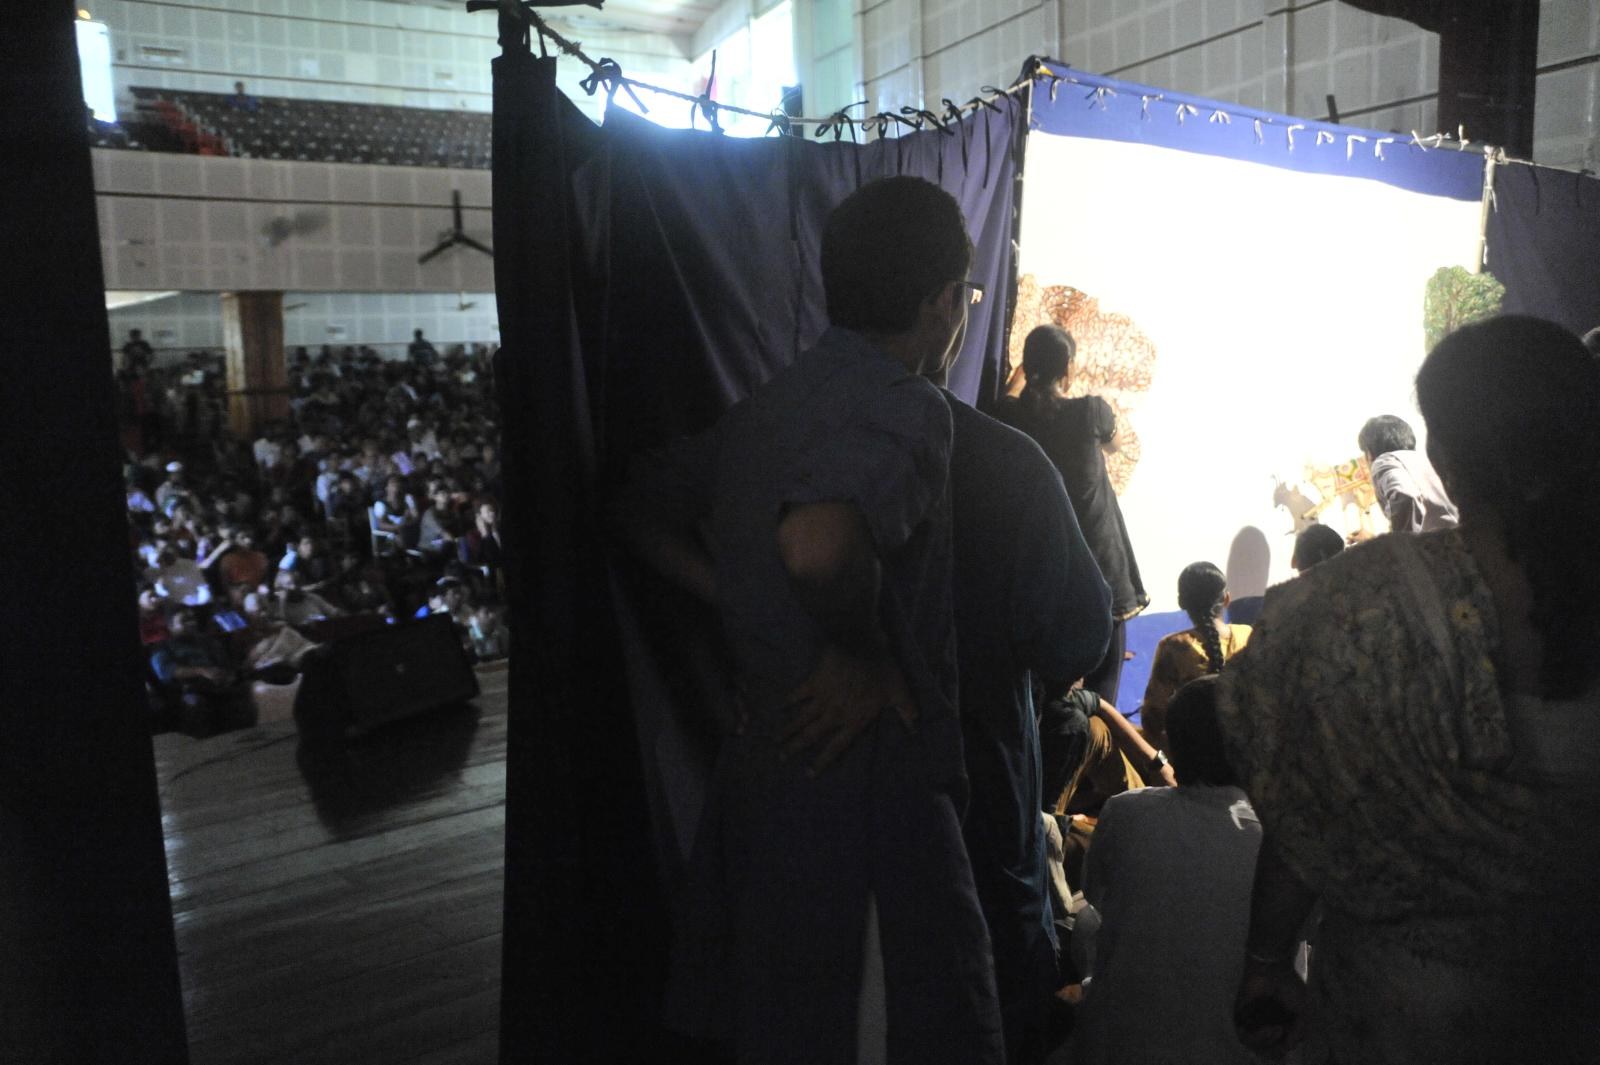 Shri Bellagallu Veerana (Leather Puppetry)'s students behind the stage